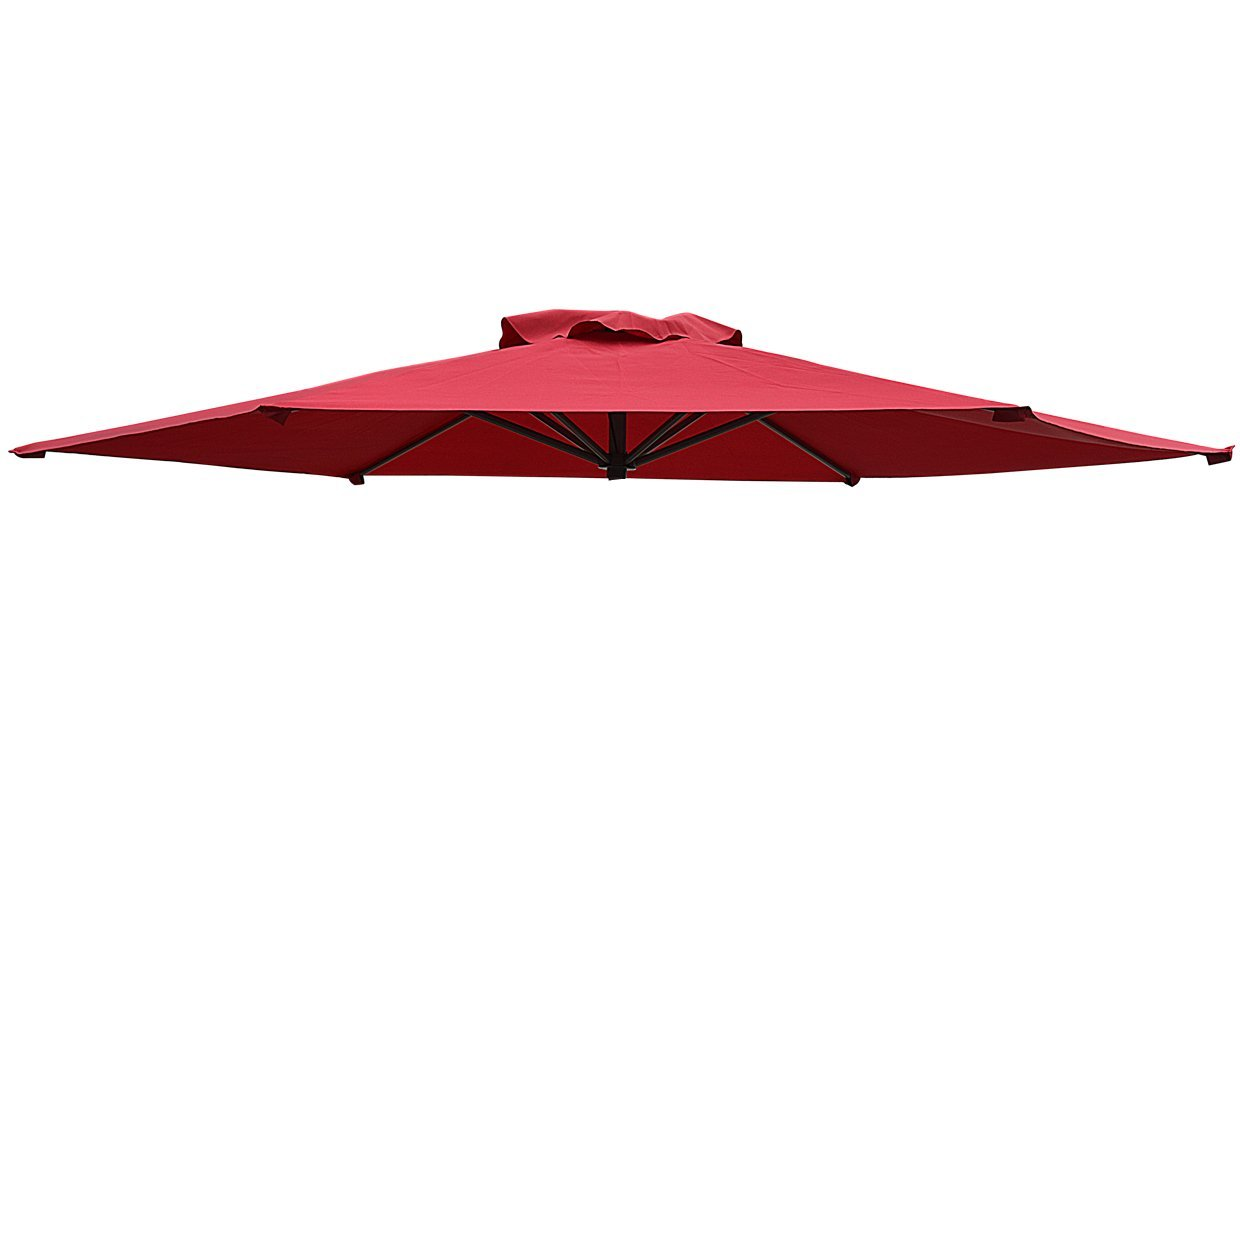 Replacement Patio Umbrella Canopy Cover For 11.5ft 8 Ribs Umbrella Taupe  (CANOPY ONLY)